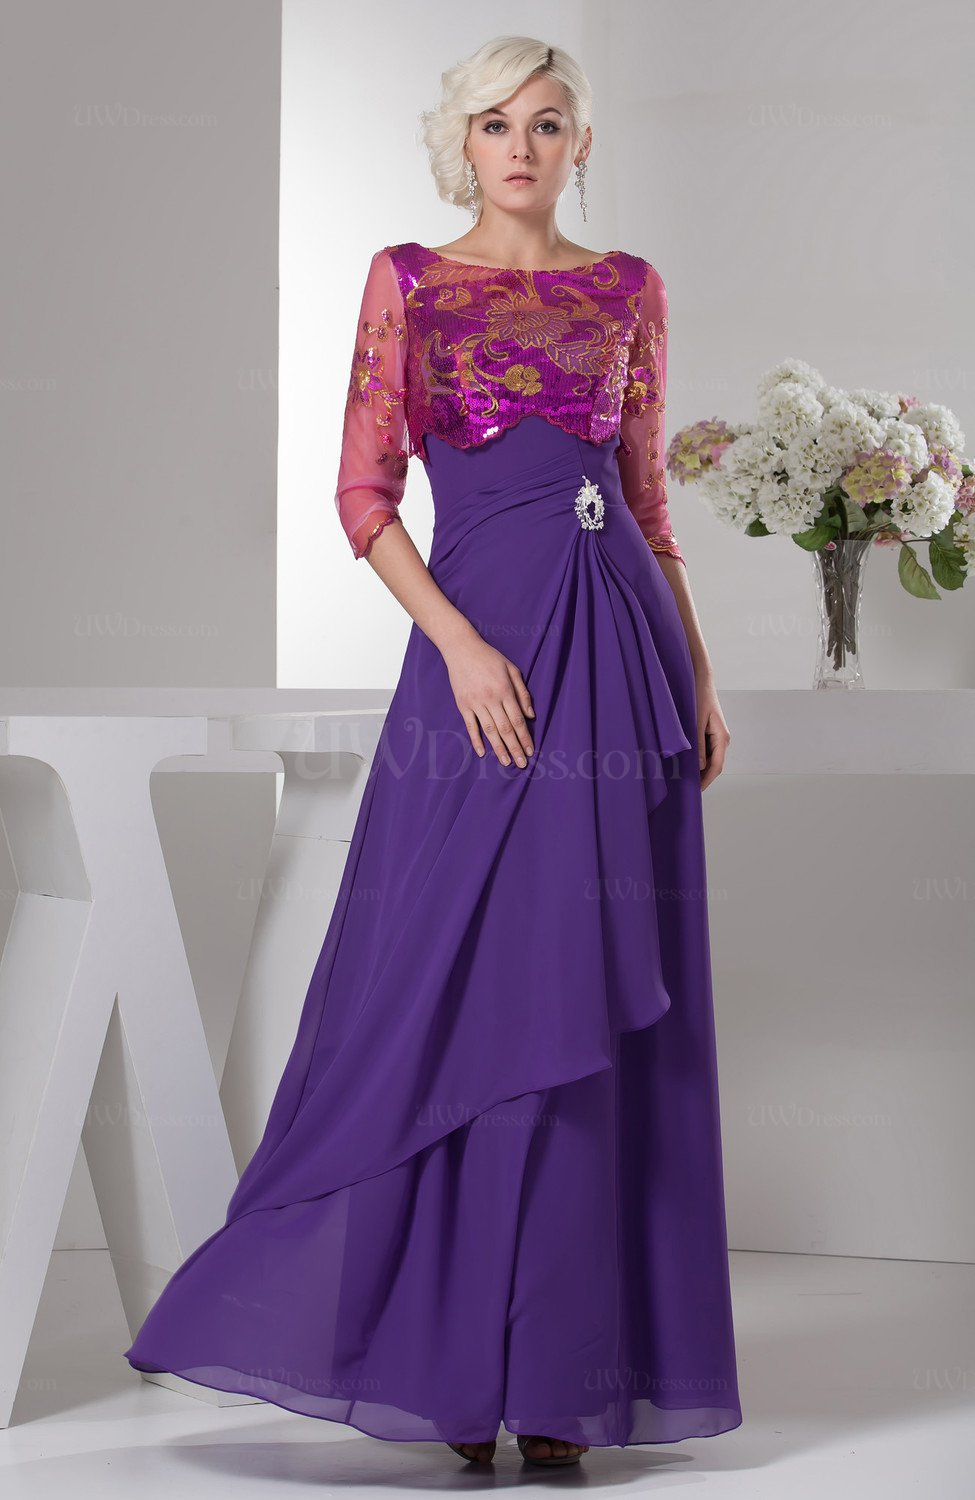 Dark Purple Unique Mother of the Bride Dress Inexpensive Traditional ...